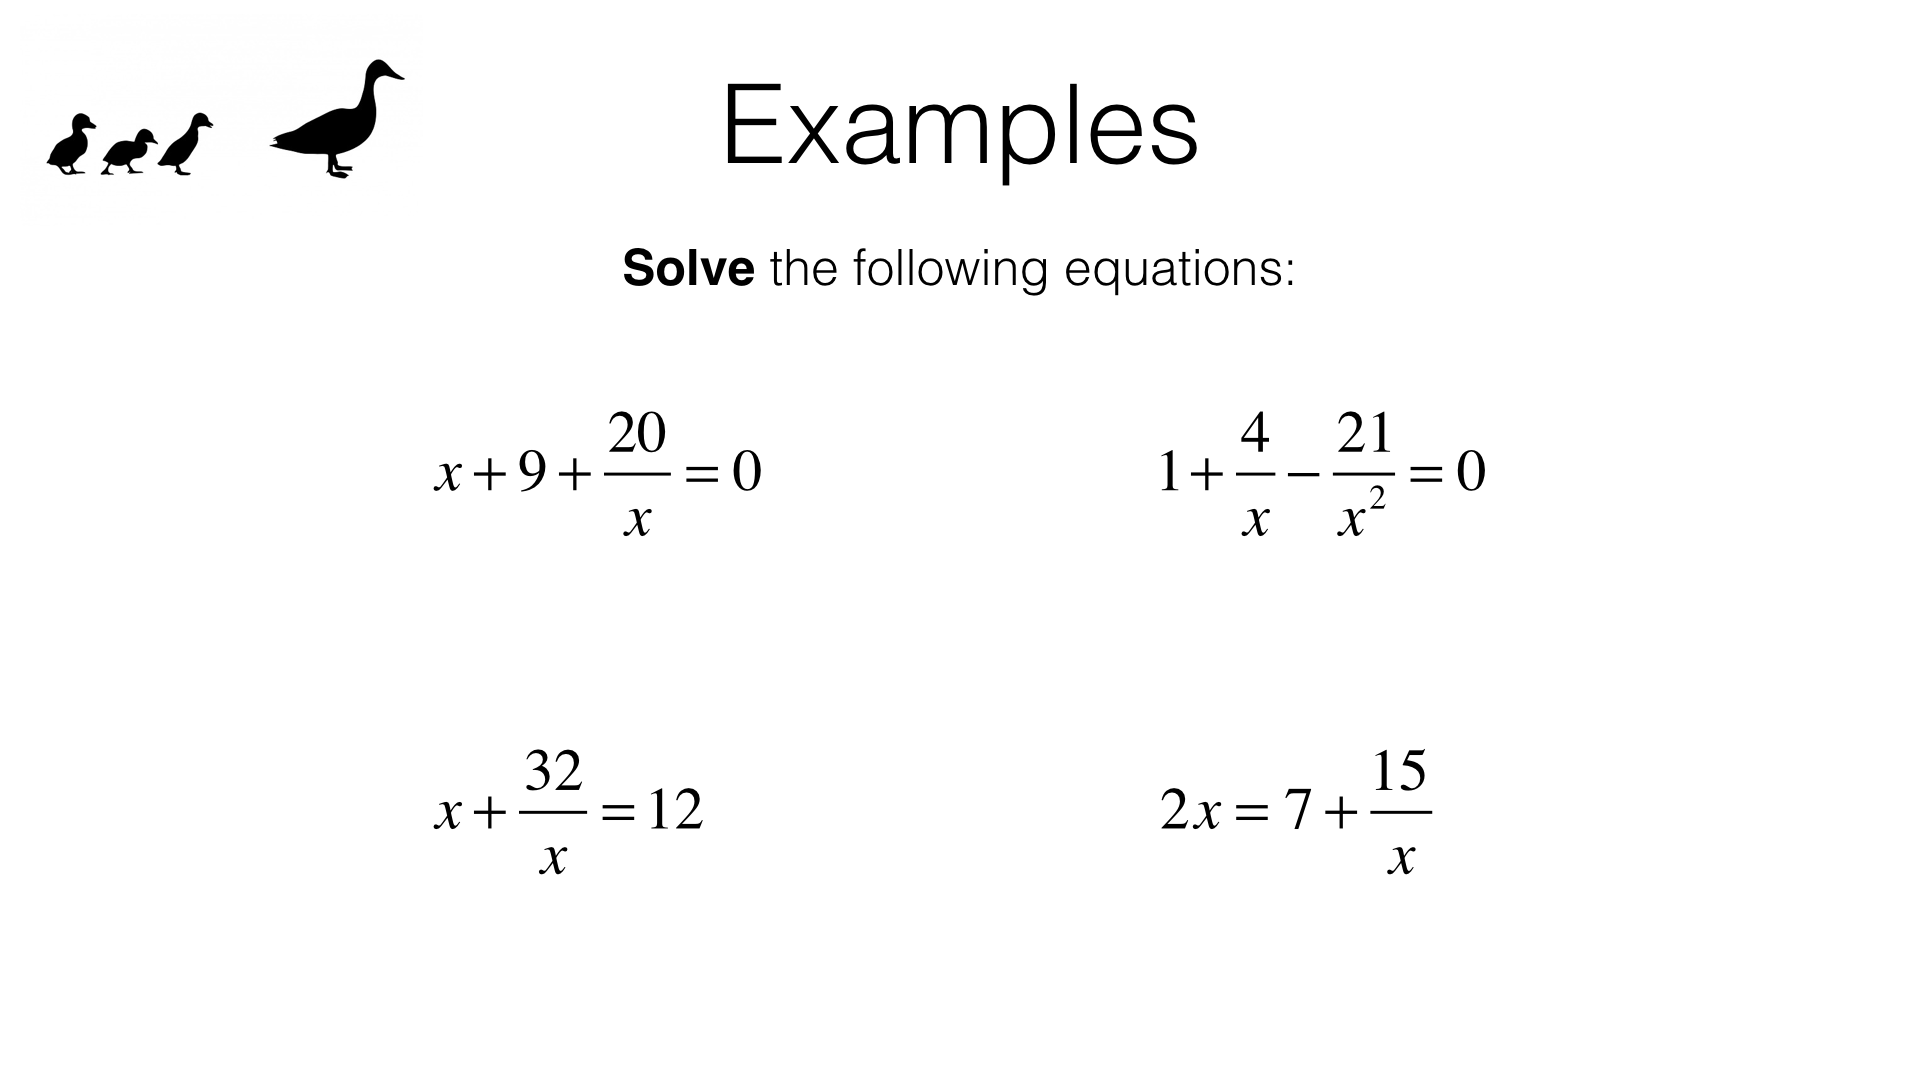 Hard Equations That Equal 15